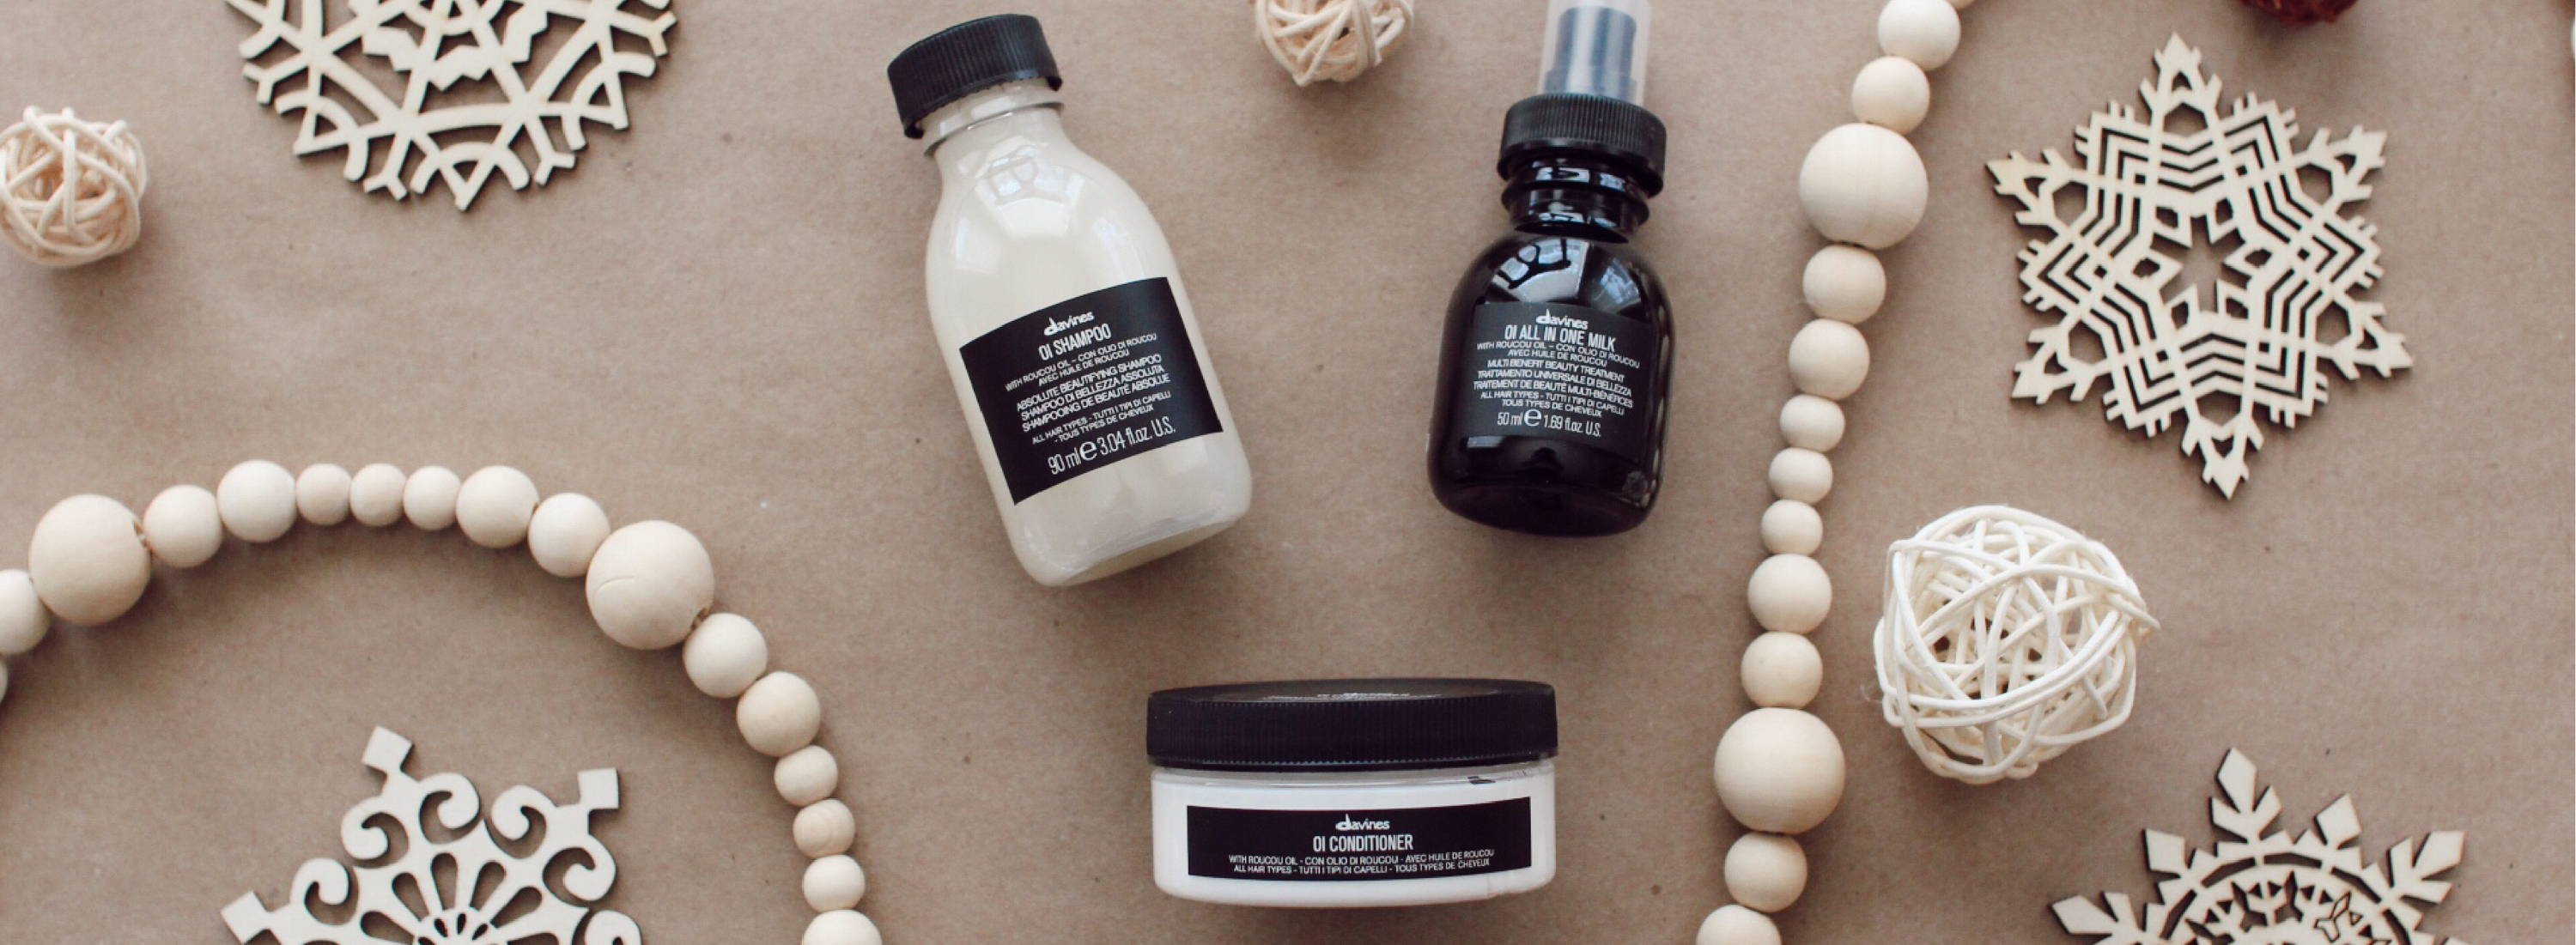 OI Travel bundle Davines holiday gift guide